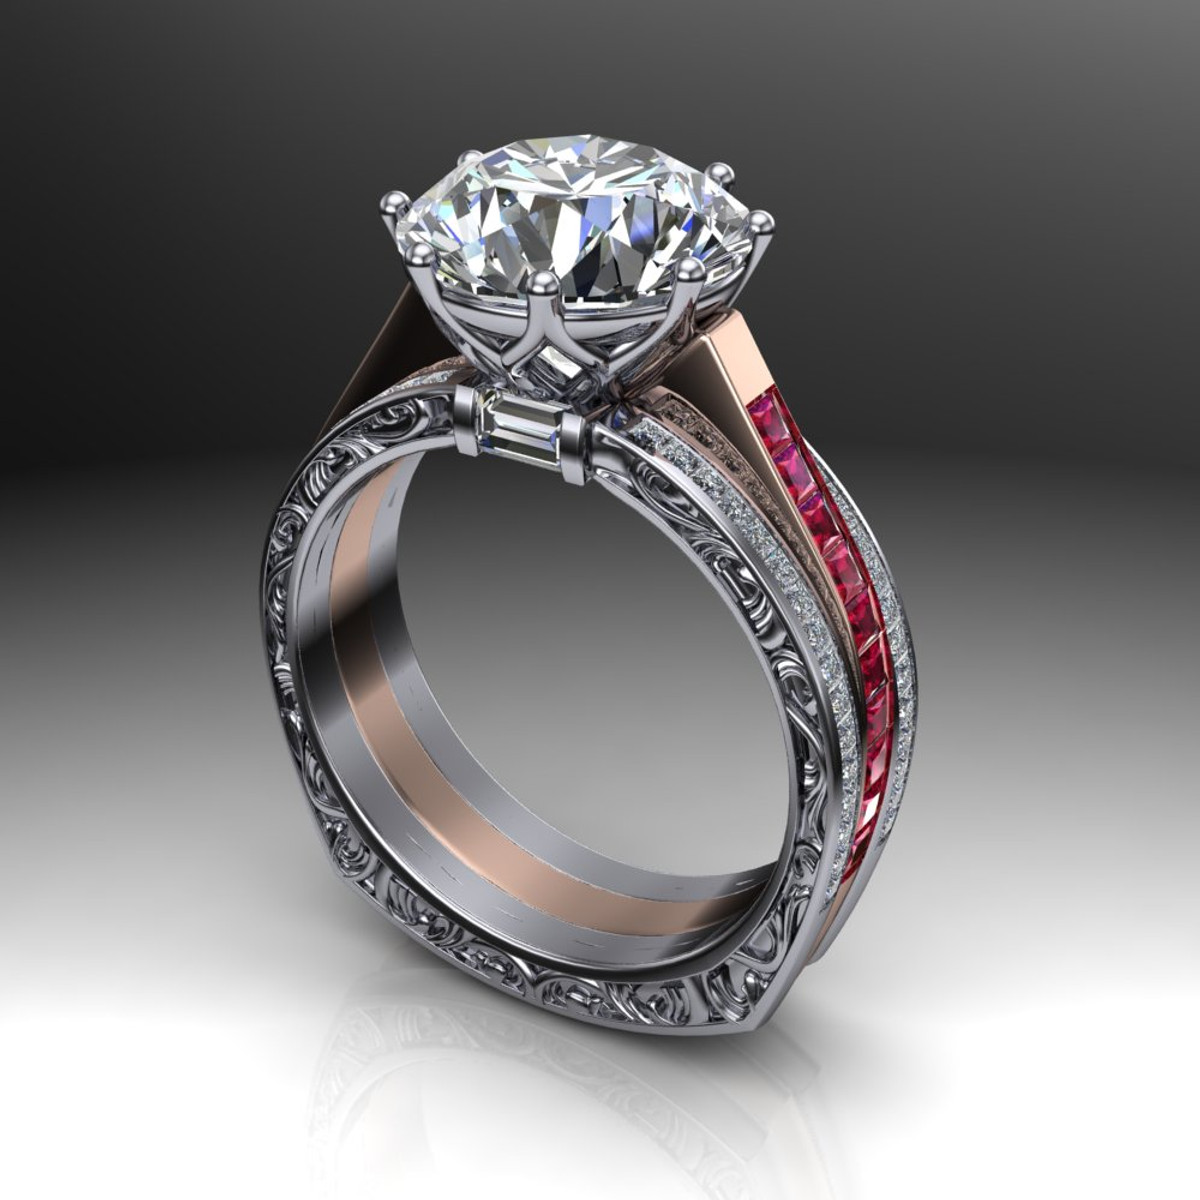 wedding photo free carat rings engagement attachment diamond ring pear gallery within shaped of viewing